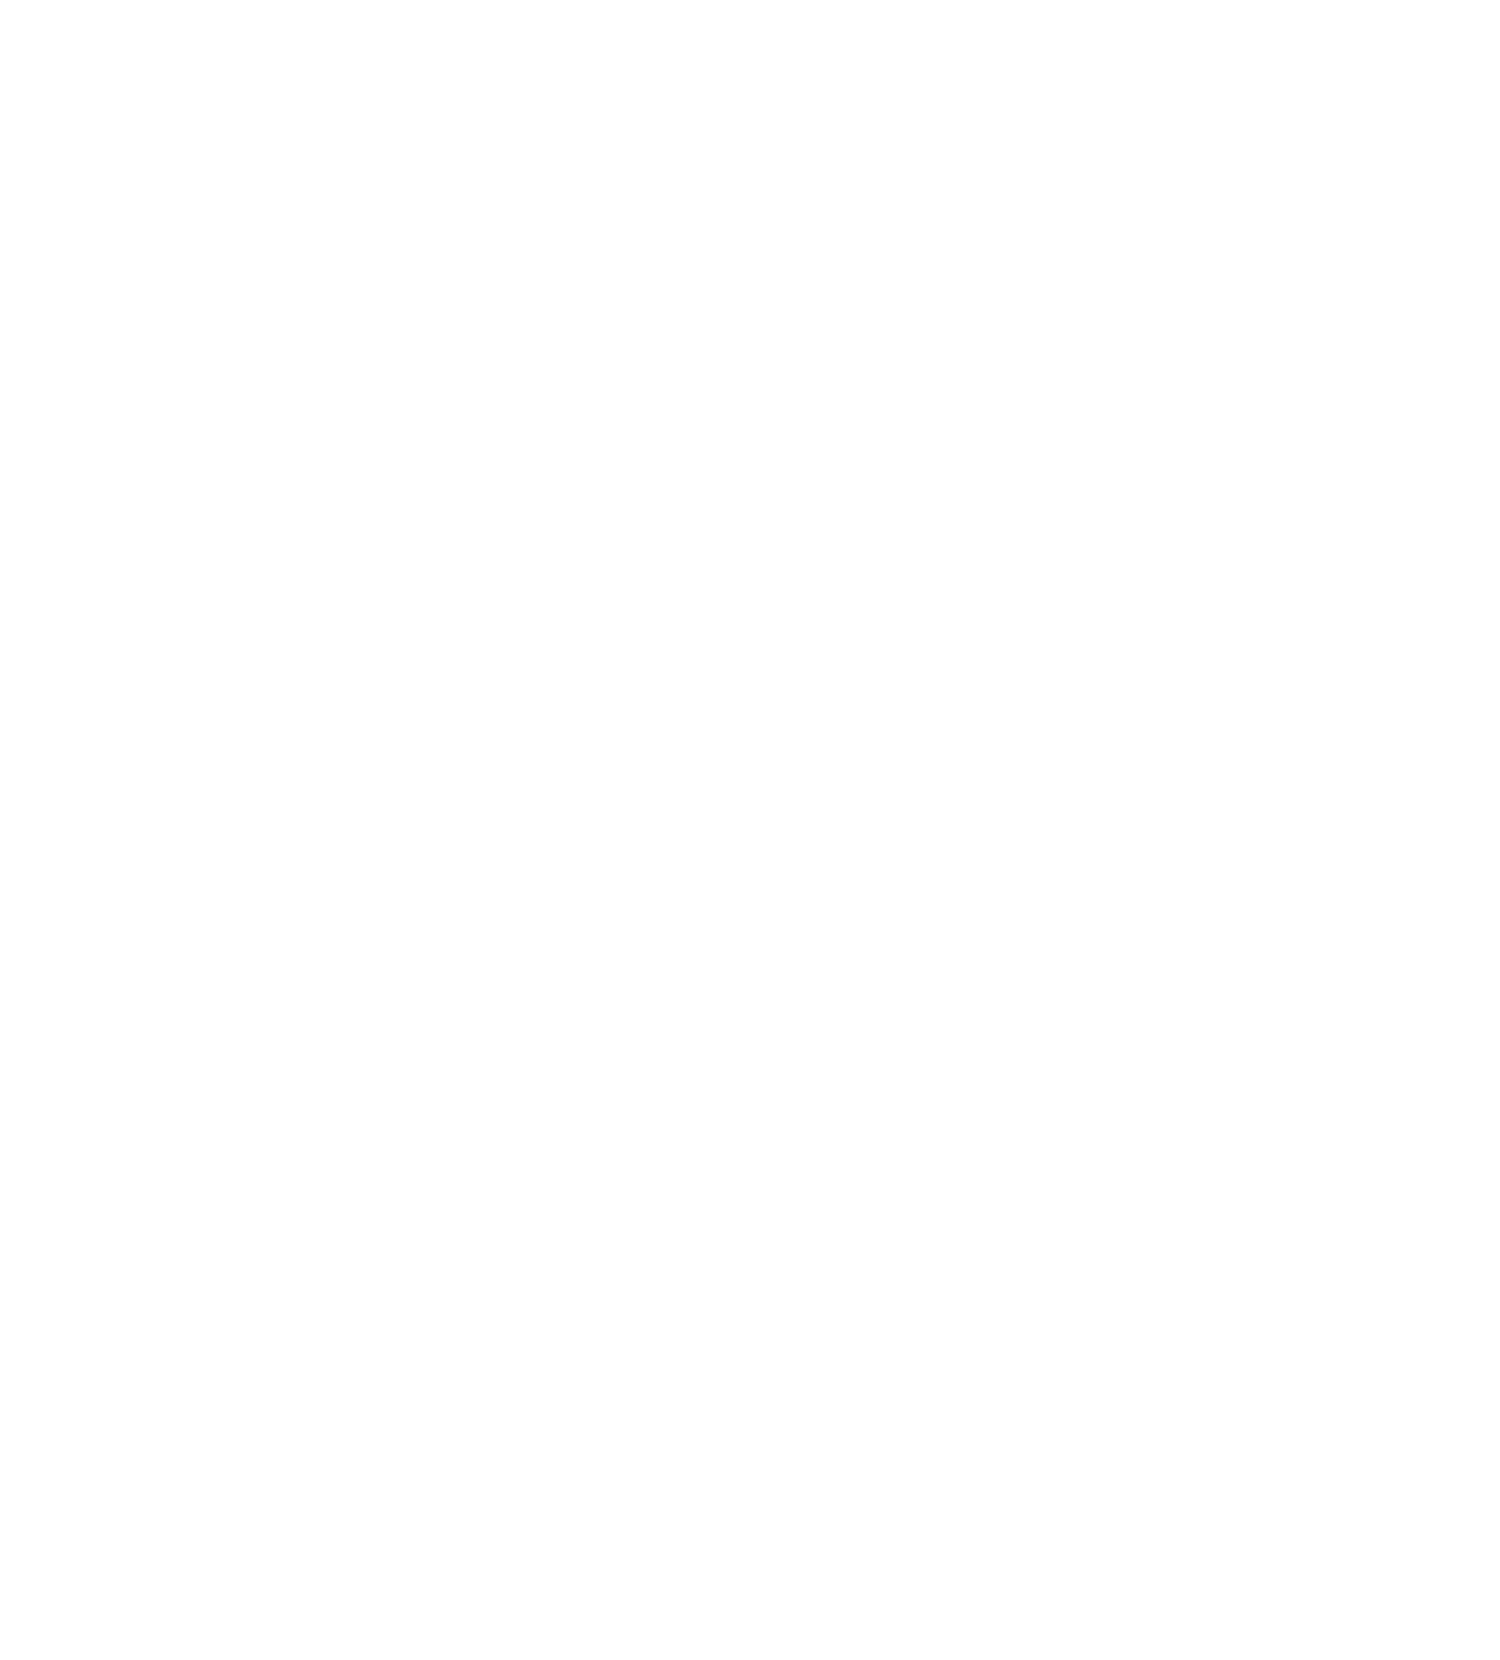 UW Catholic Newman Center